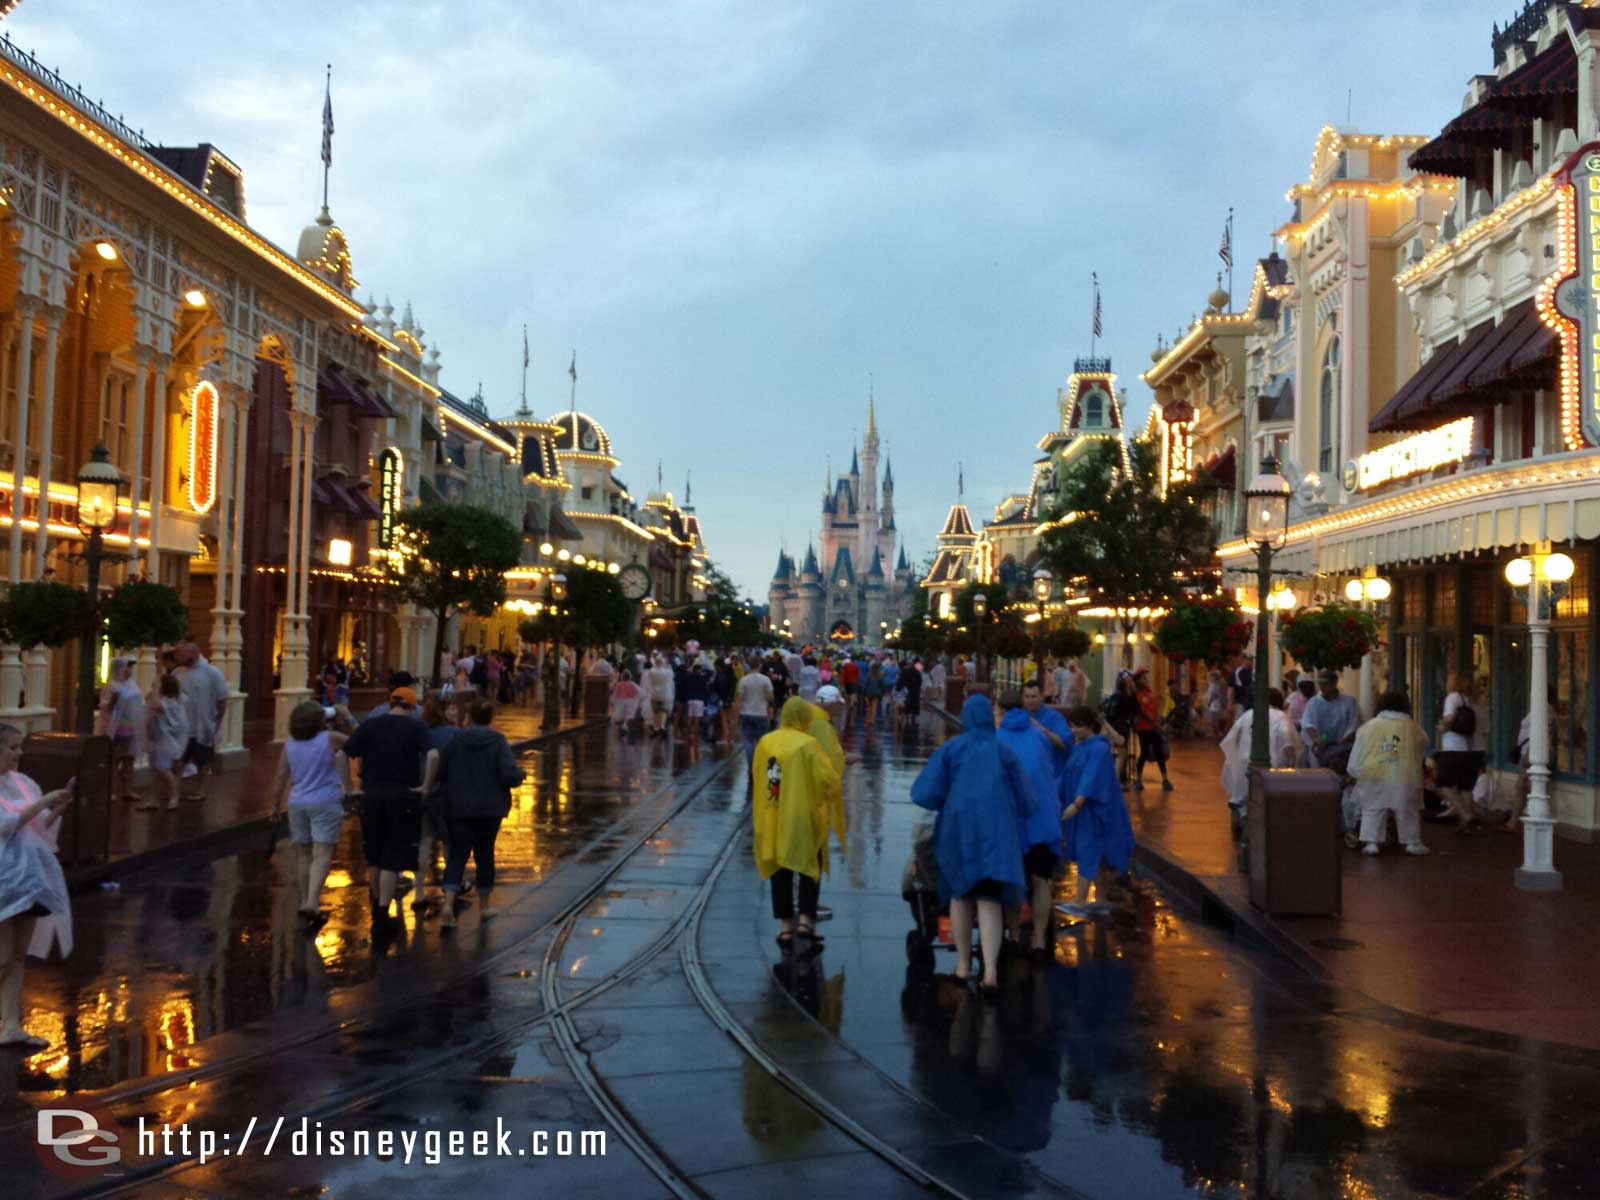 Arriving at a very wet Magic Kingdom